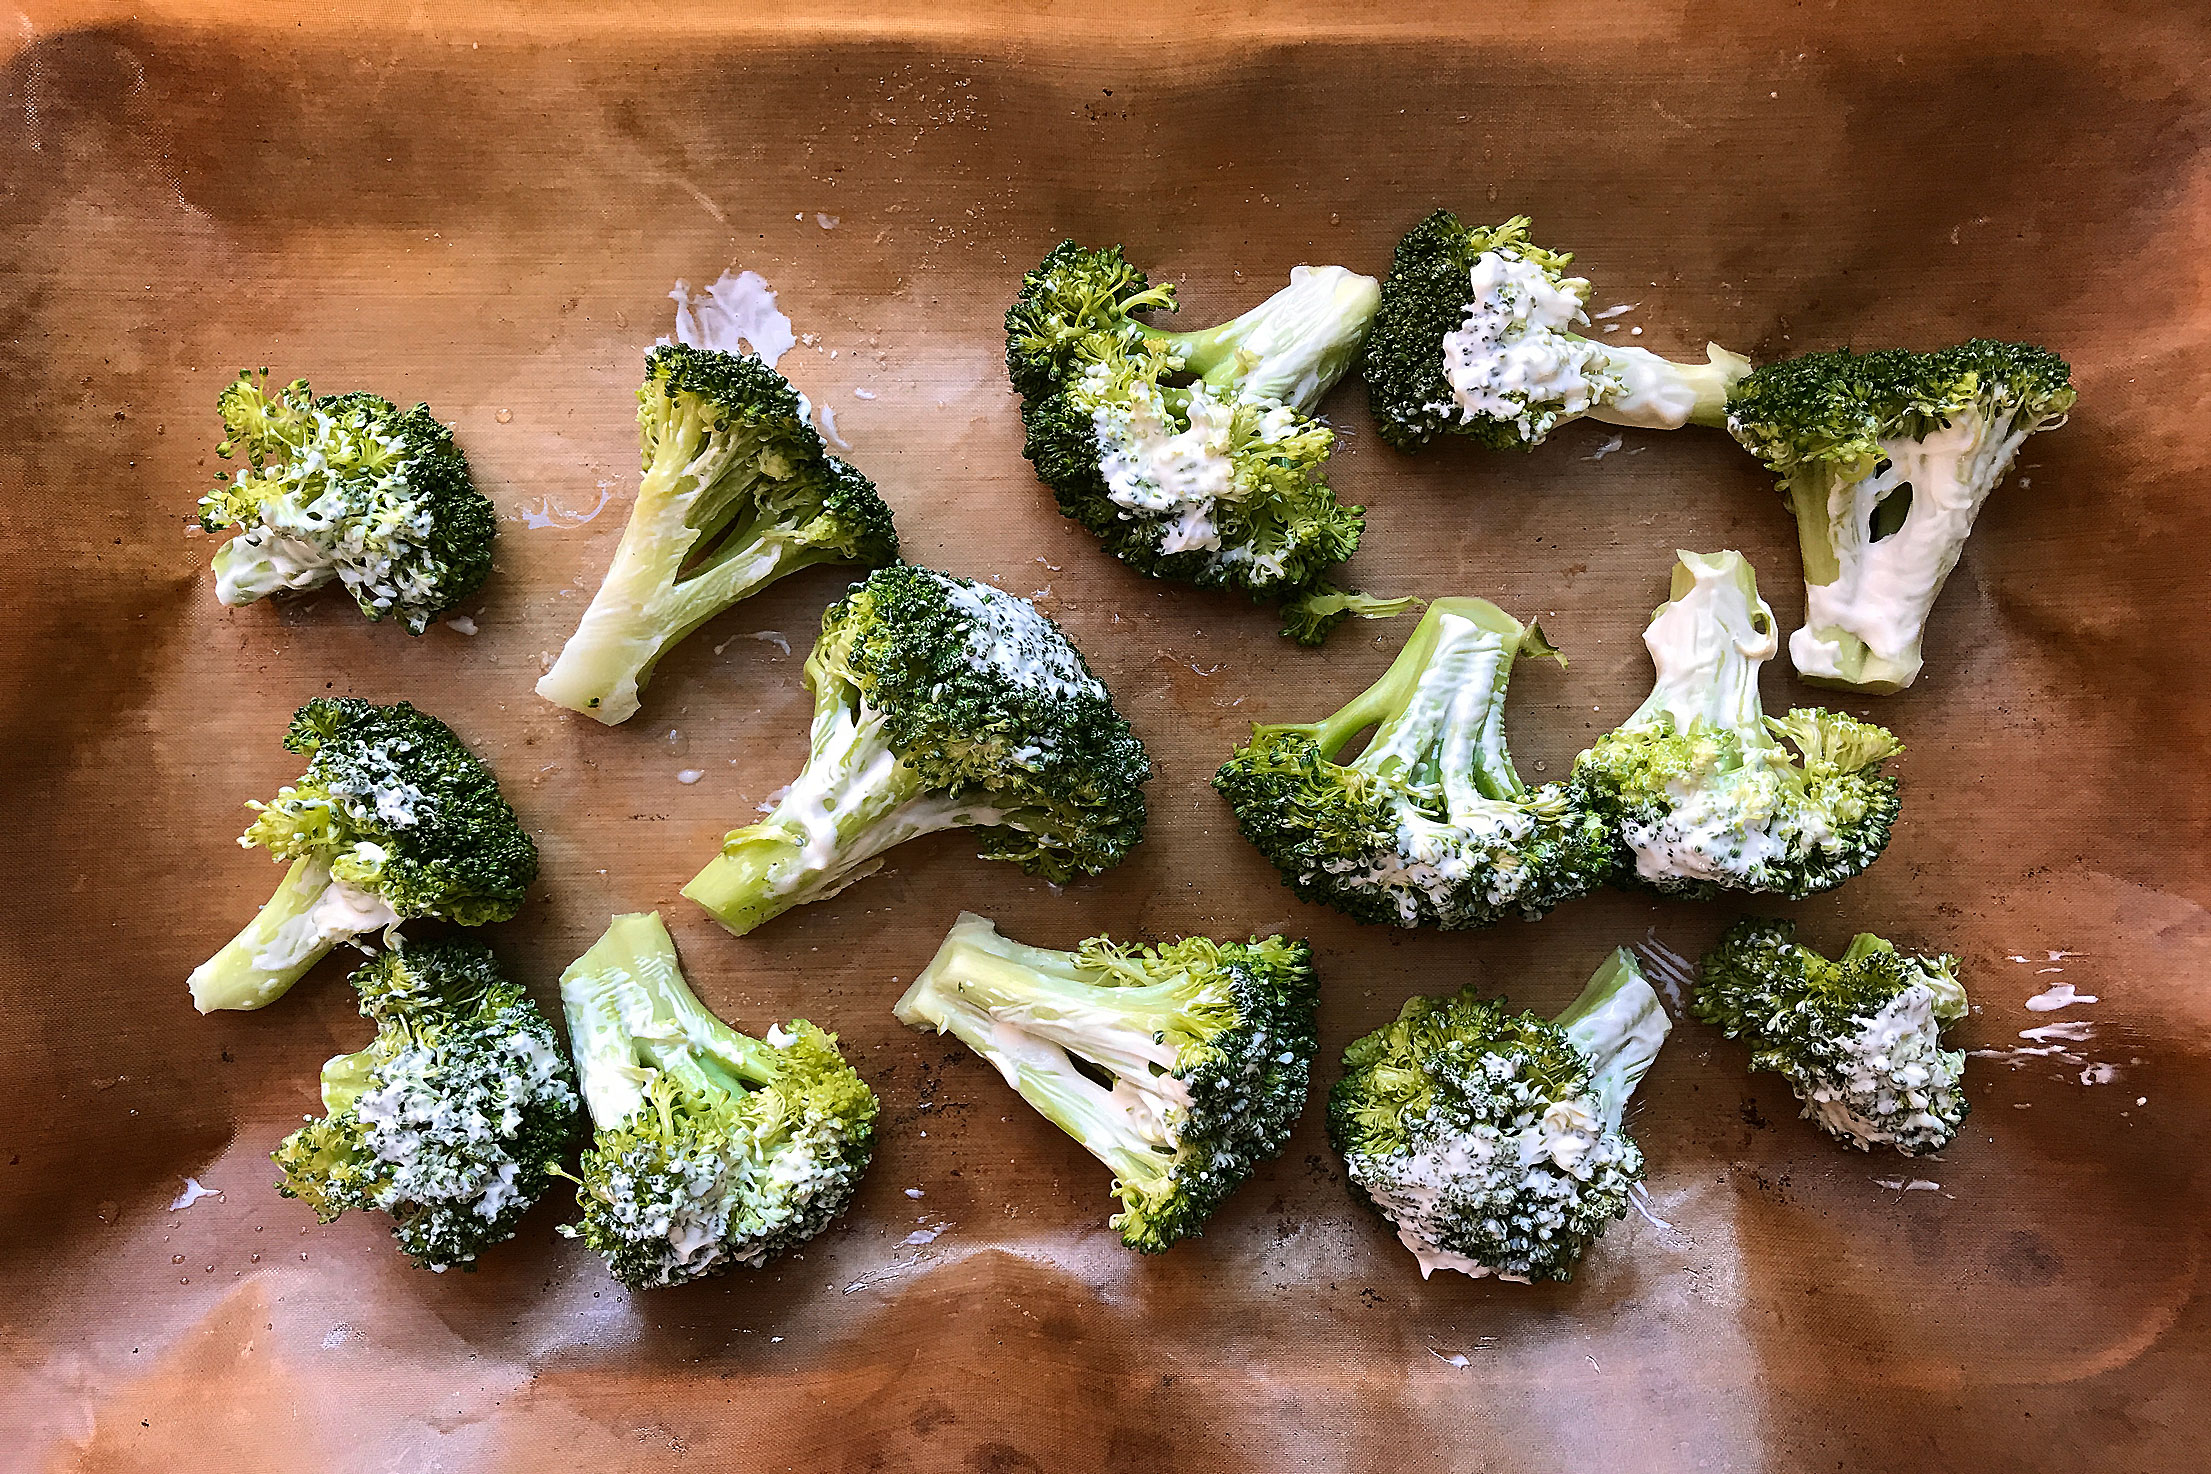 Broccoli ready for the grill